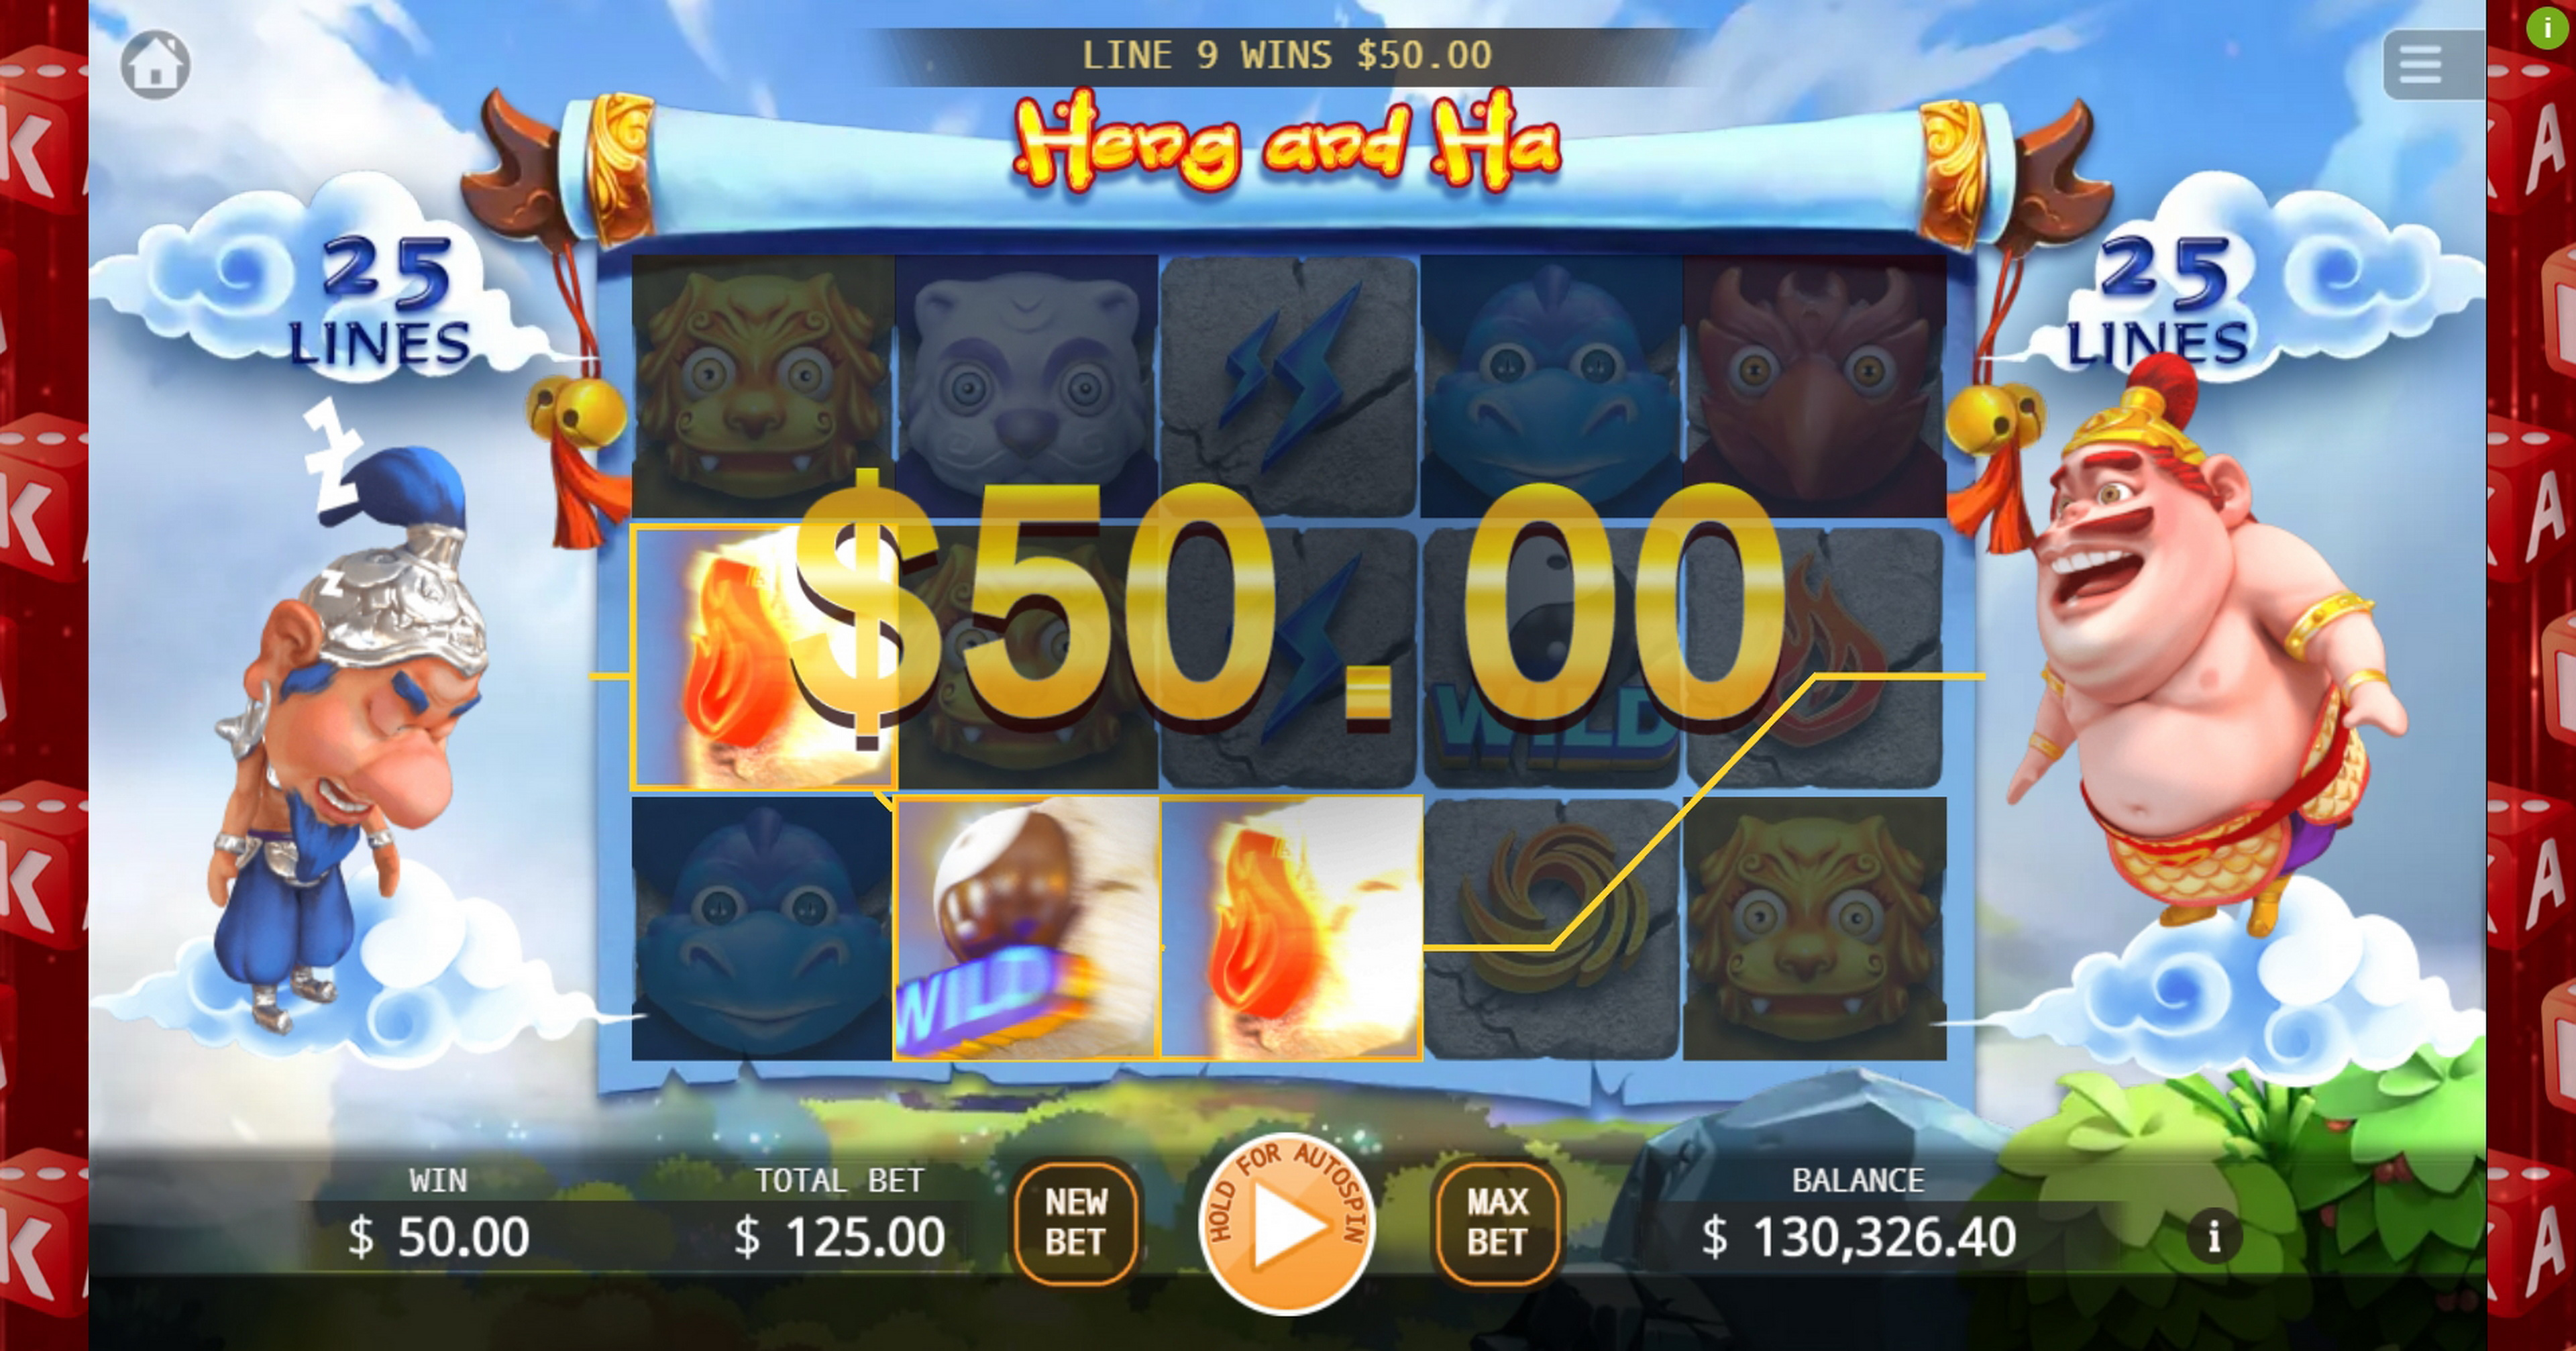 Win Money in Heng and Ha Free Slot Game by KA Gaming